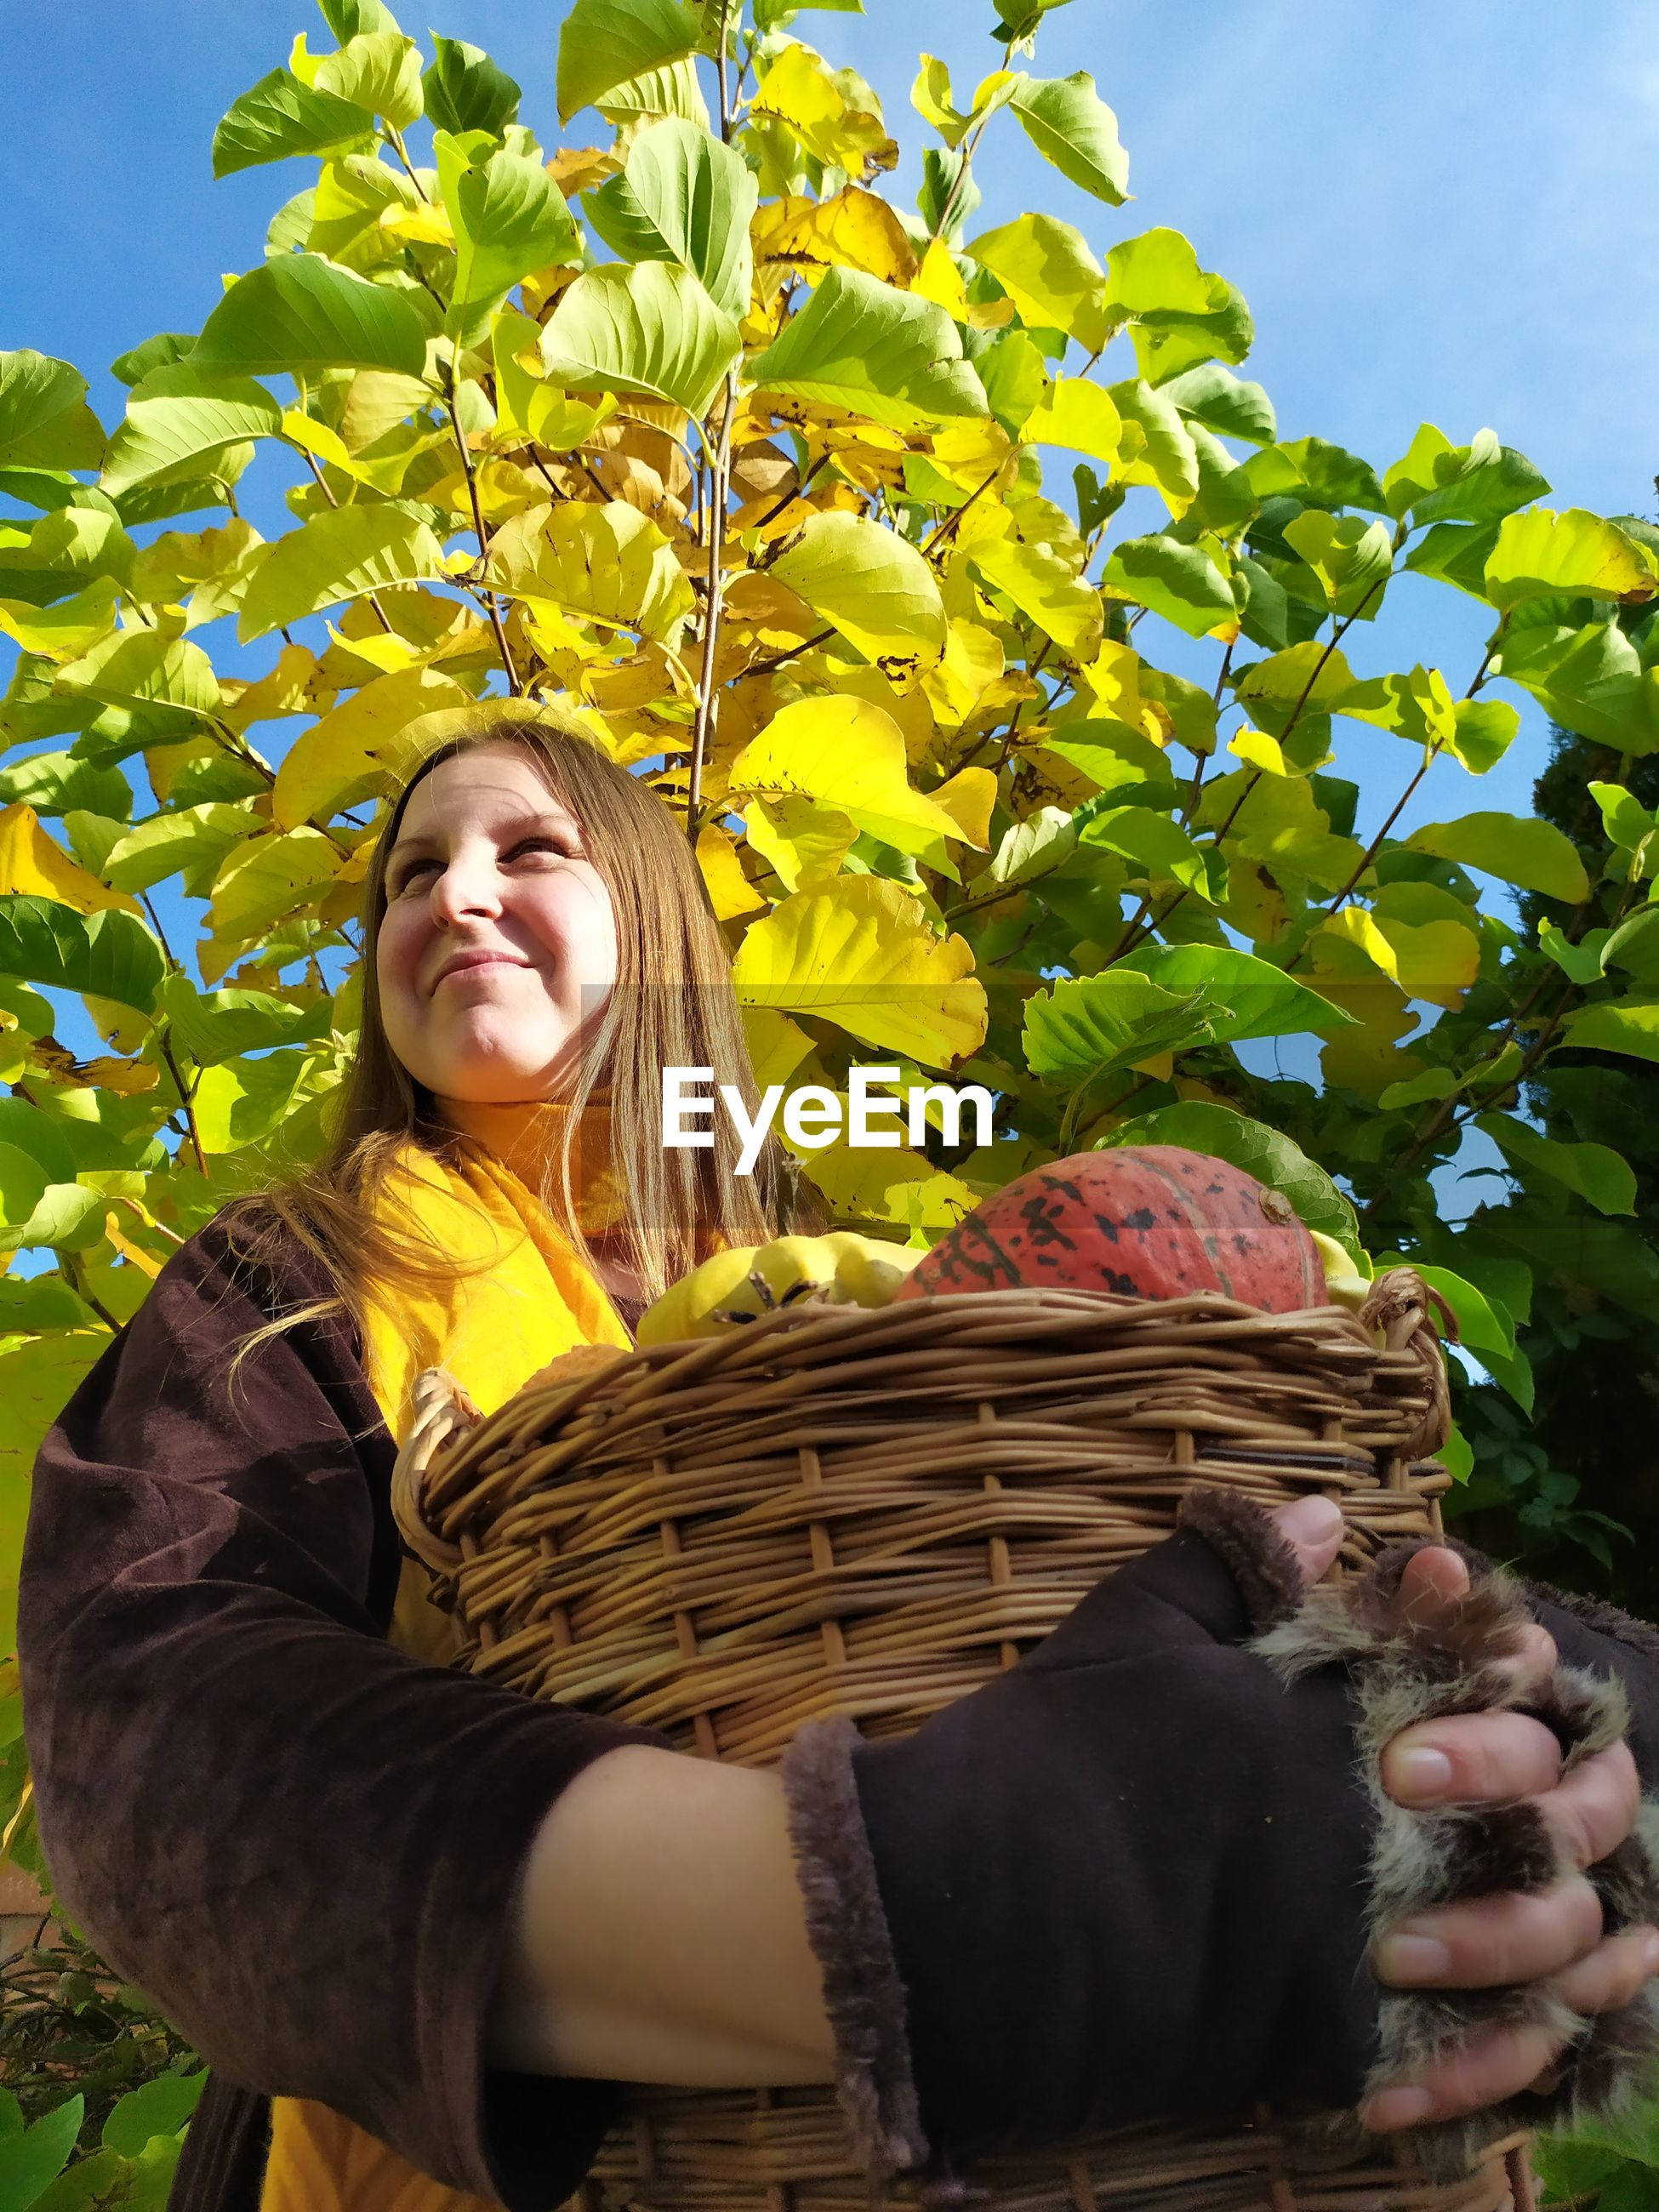 Mature woman holding basket with pumpkins standing against plants and blue sky